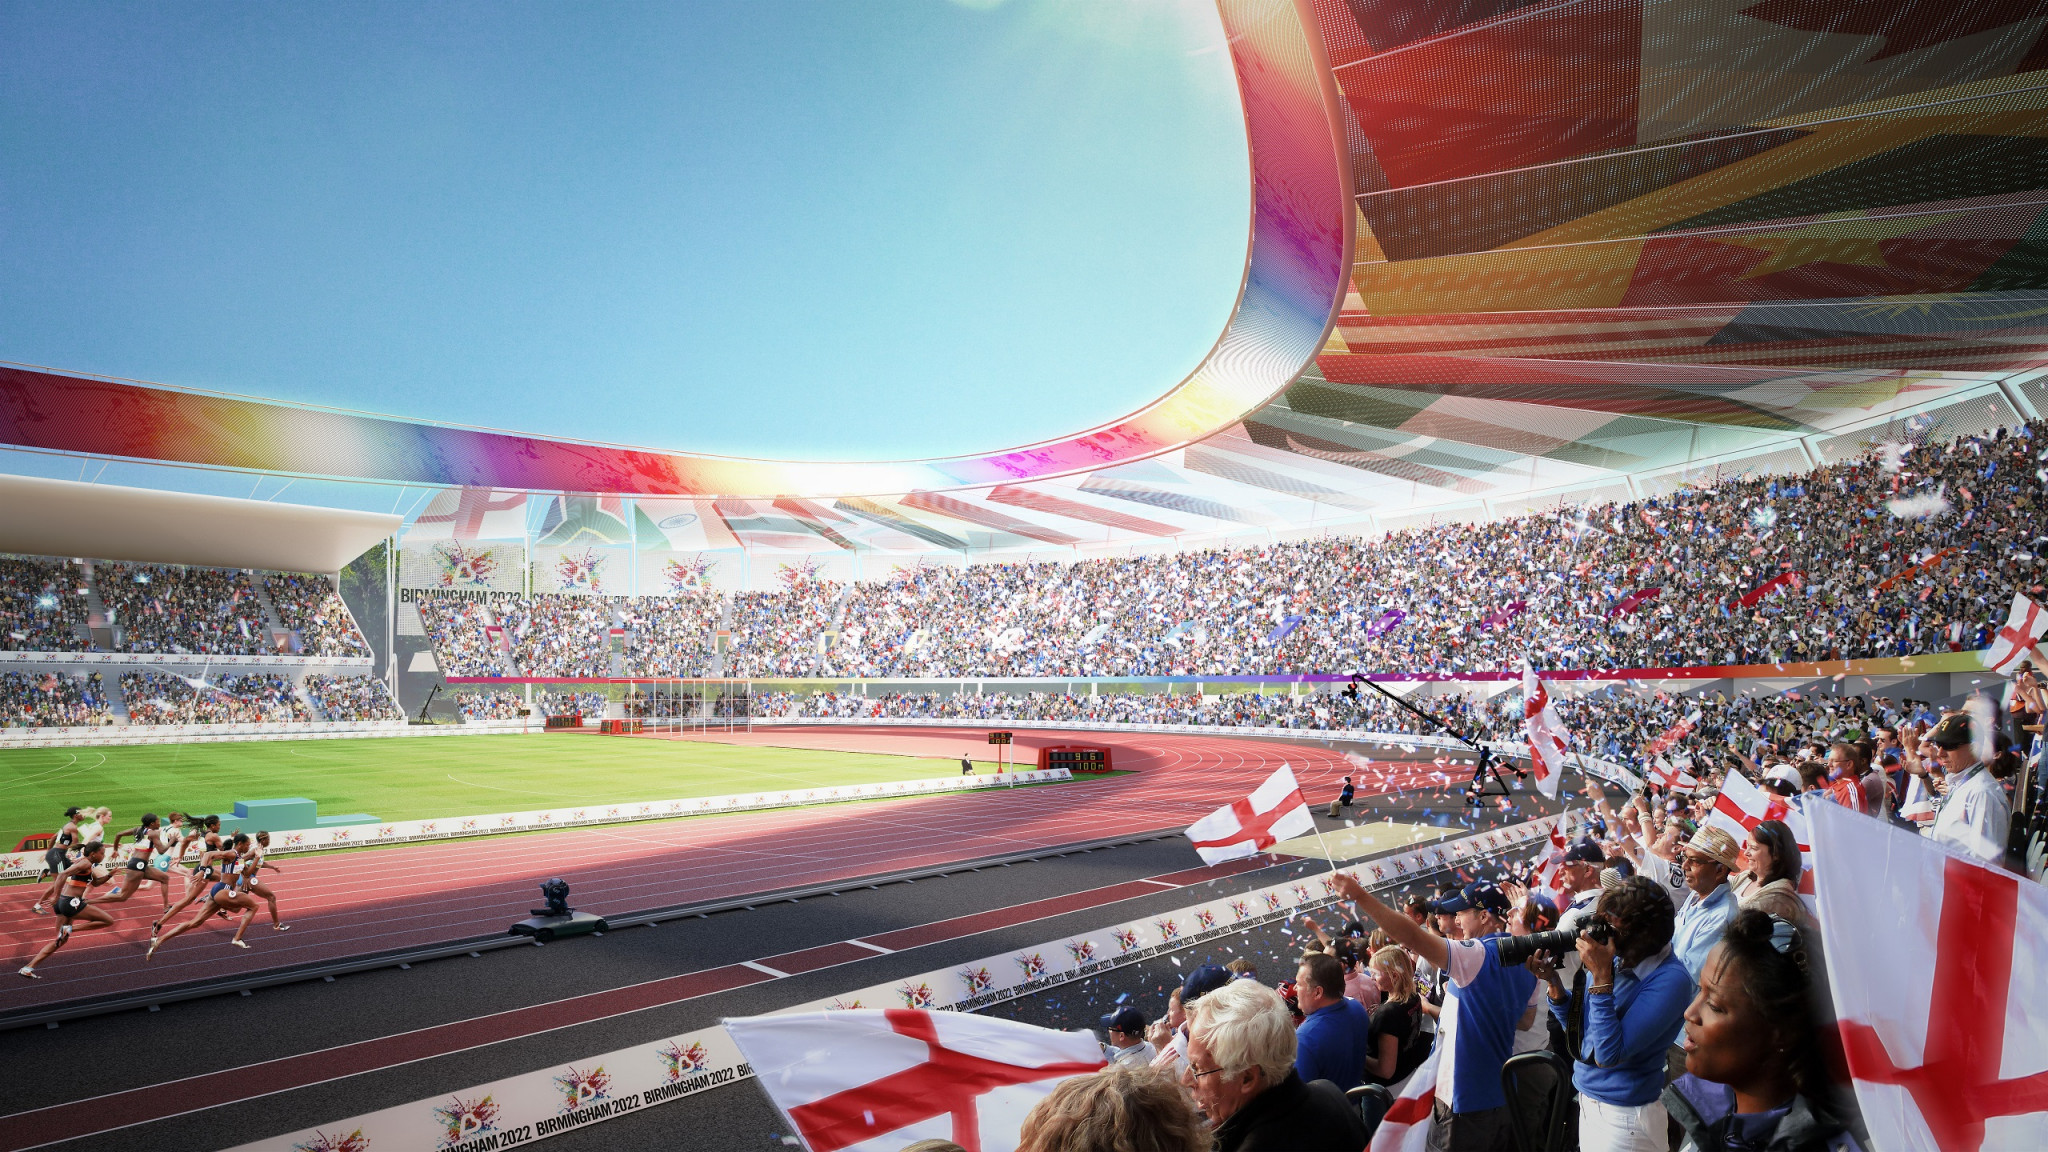 Alexander Stadium will be revamped for Birmingham 2022 and be the centrepiece of the Commonwealth Games ©Birmingham 2022